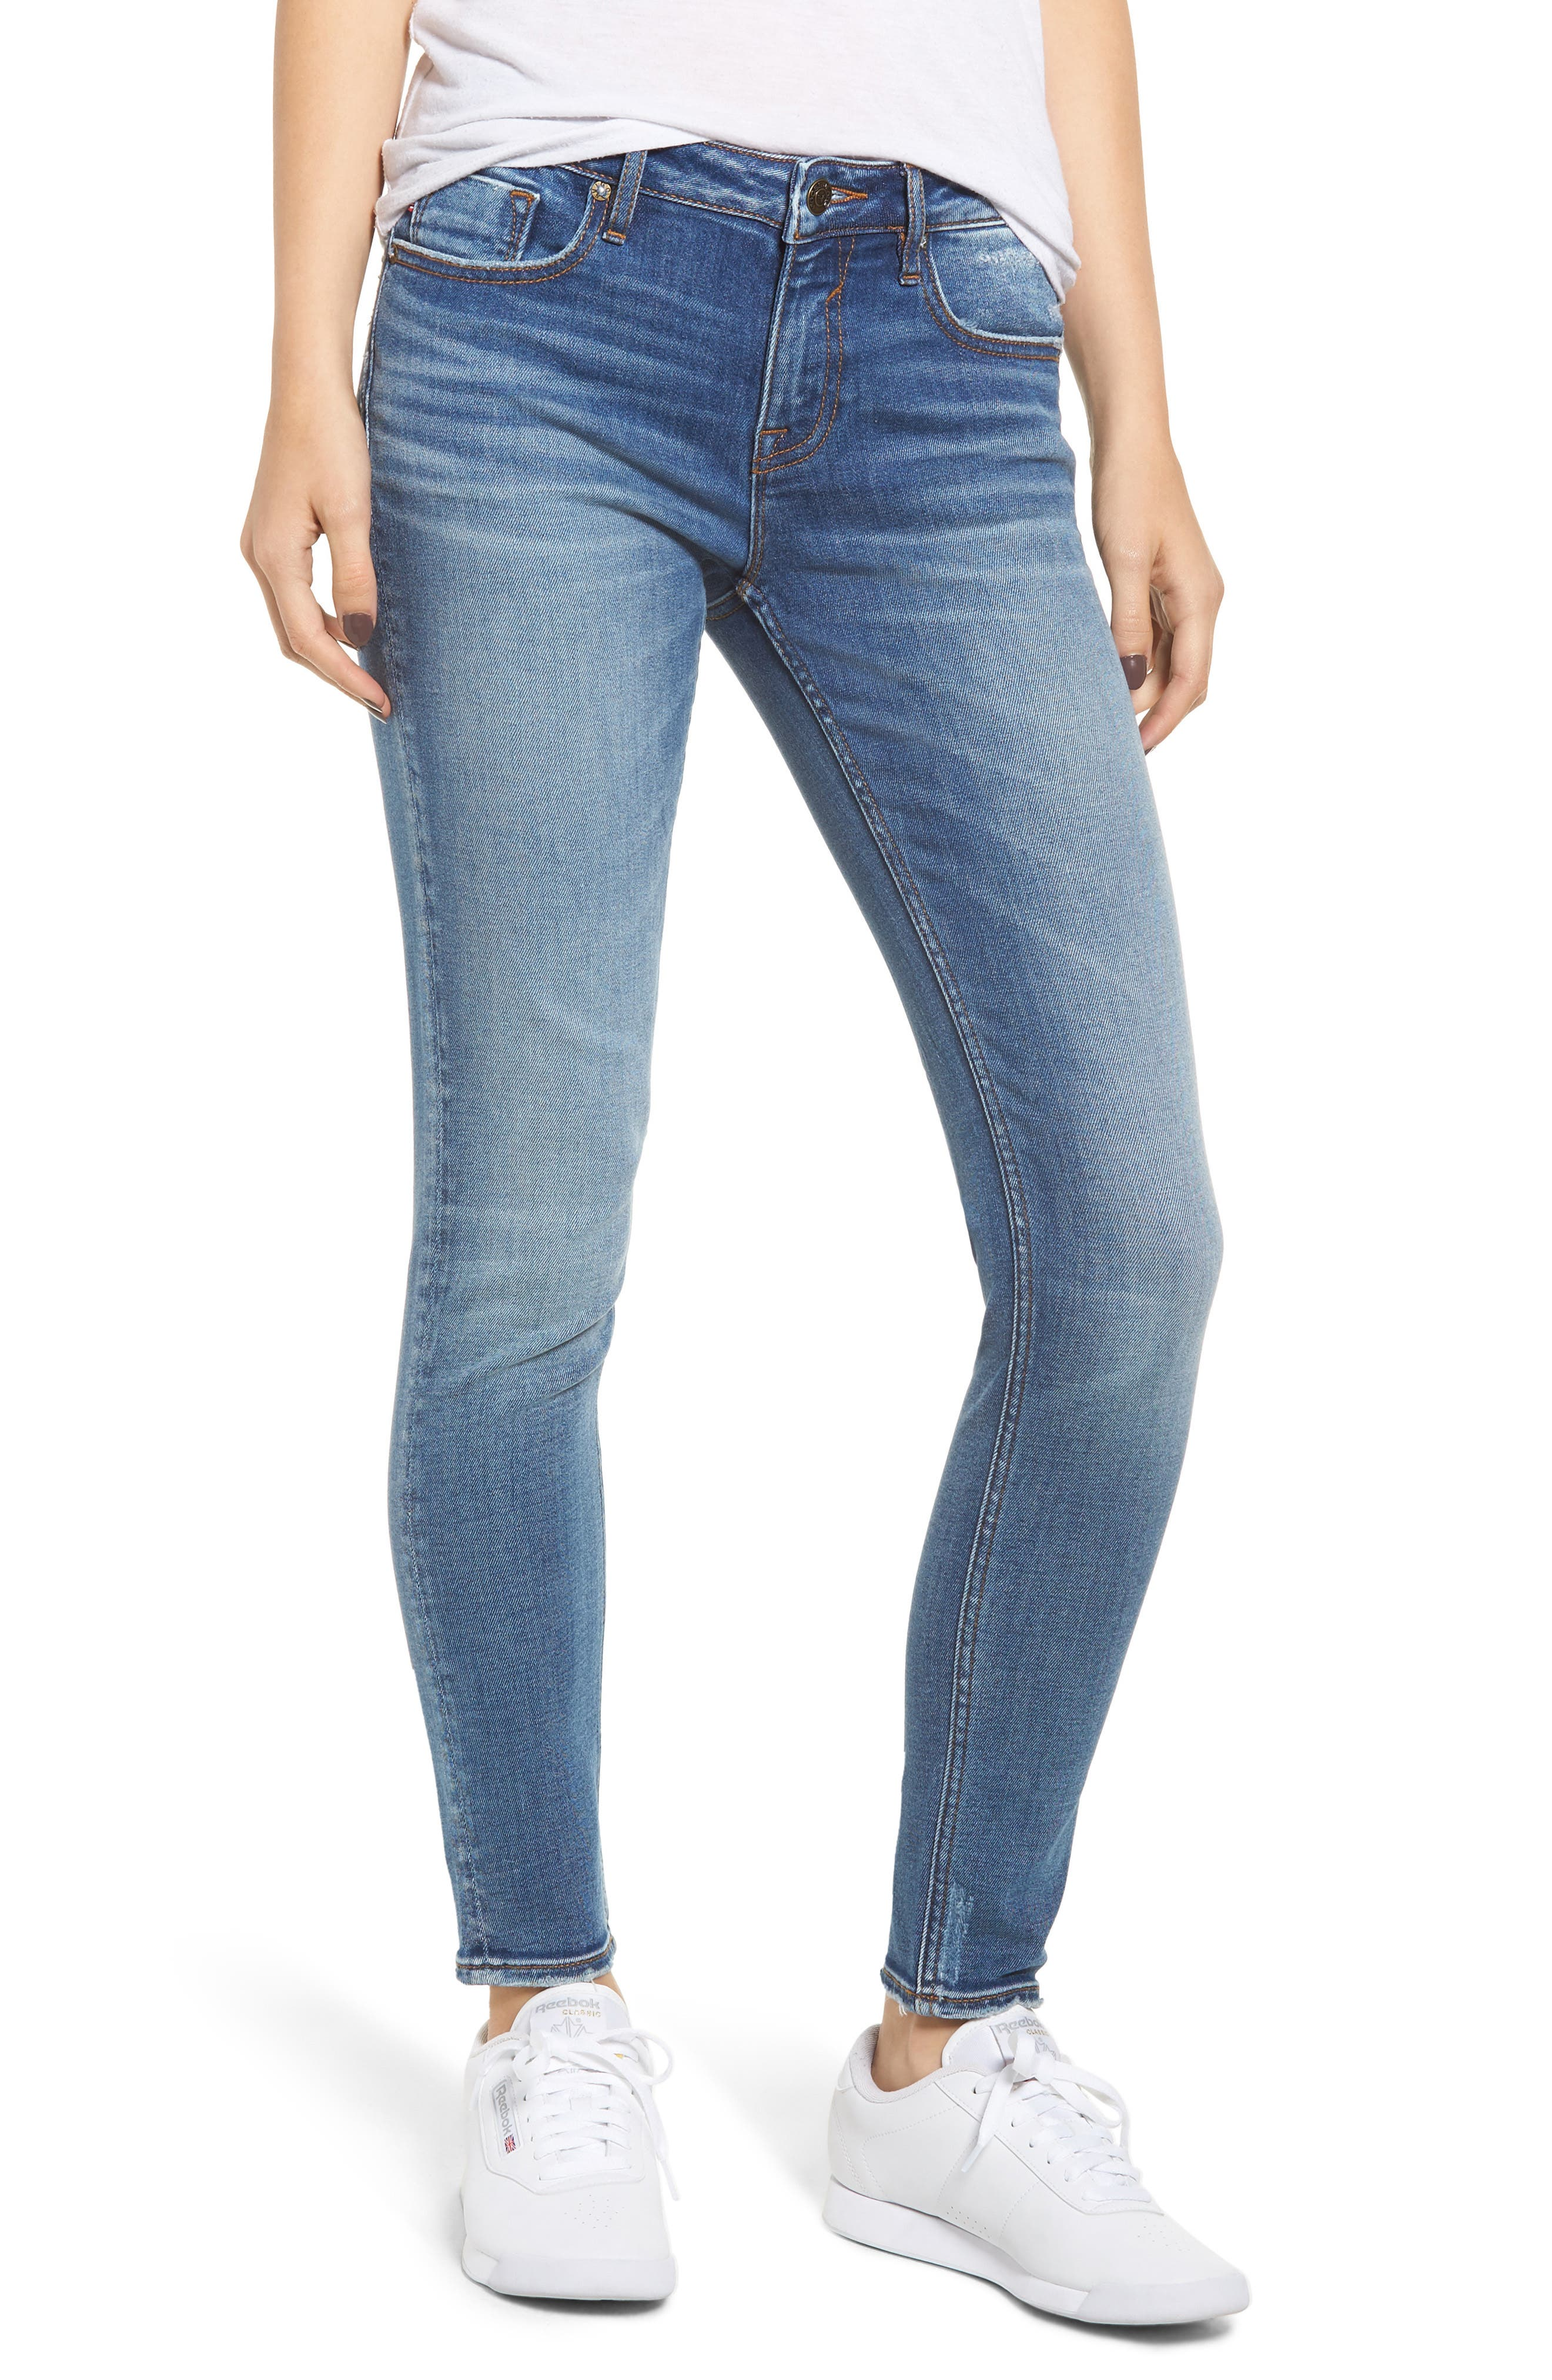 Jagger Skinny Jeans,                             Main thumbnail 1, color,                             VINTAGE BLUE